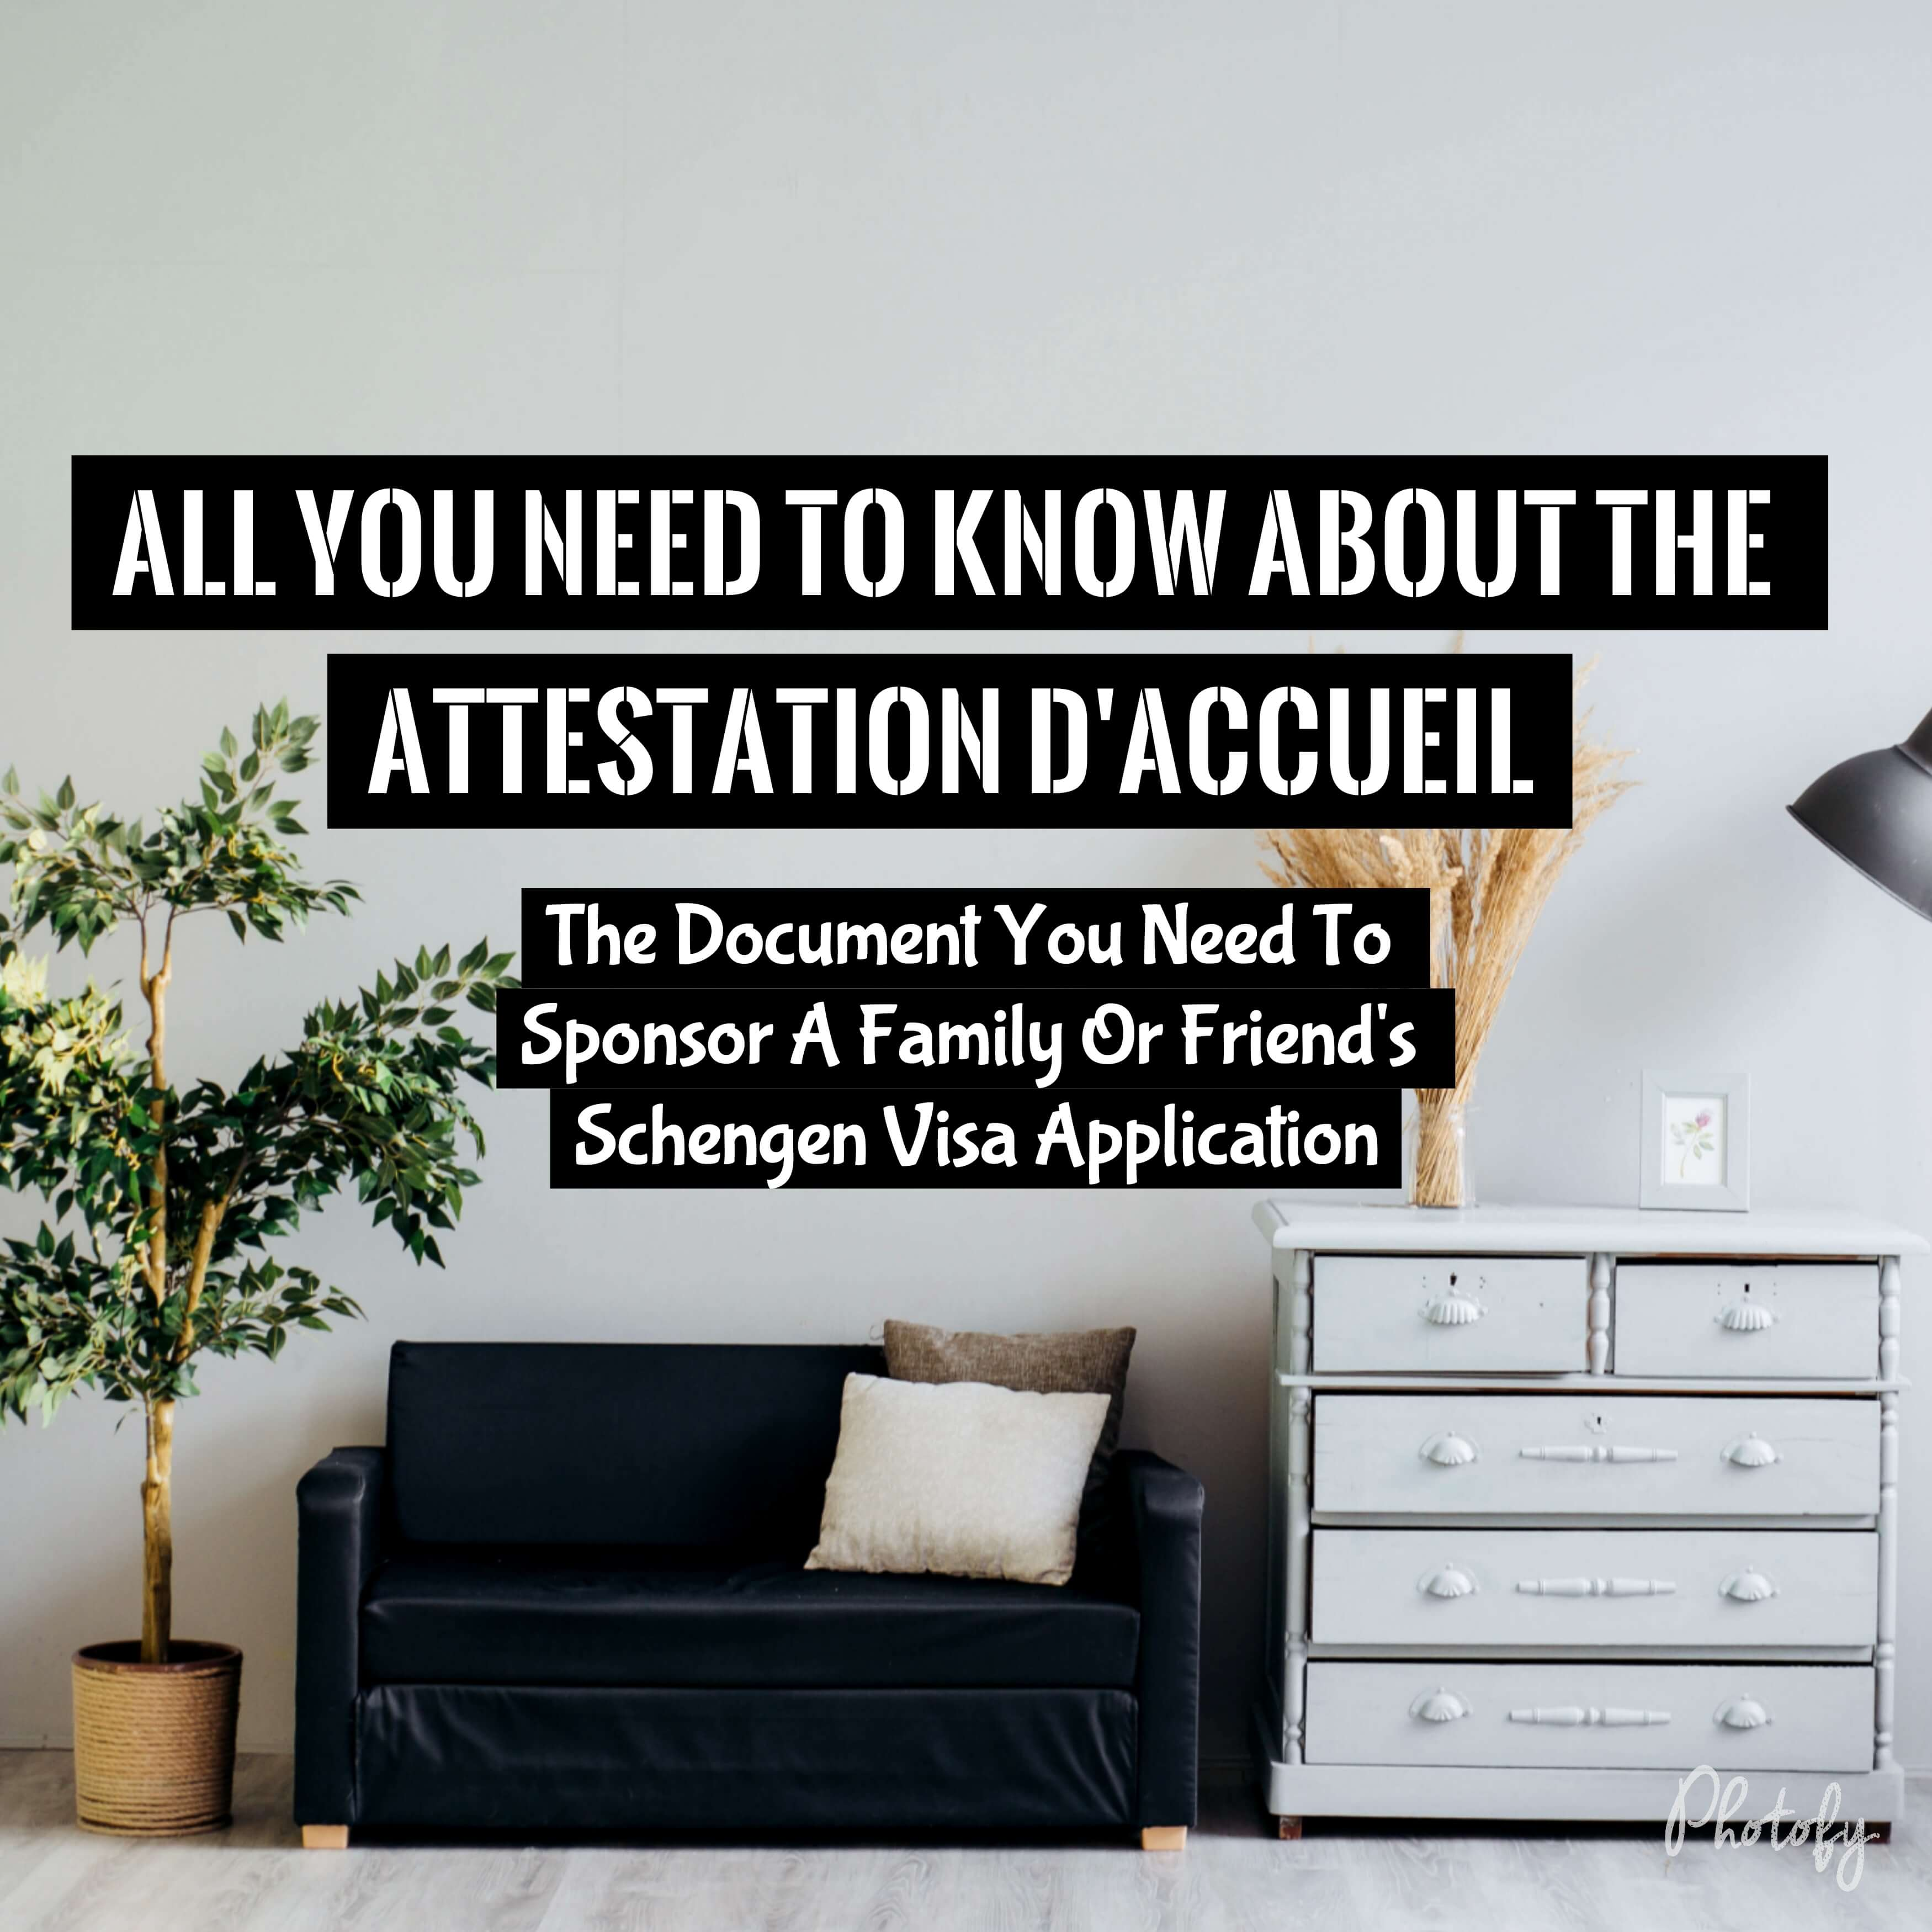 All You Need To Know About The Attestation D Accueil The